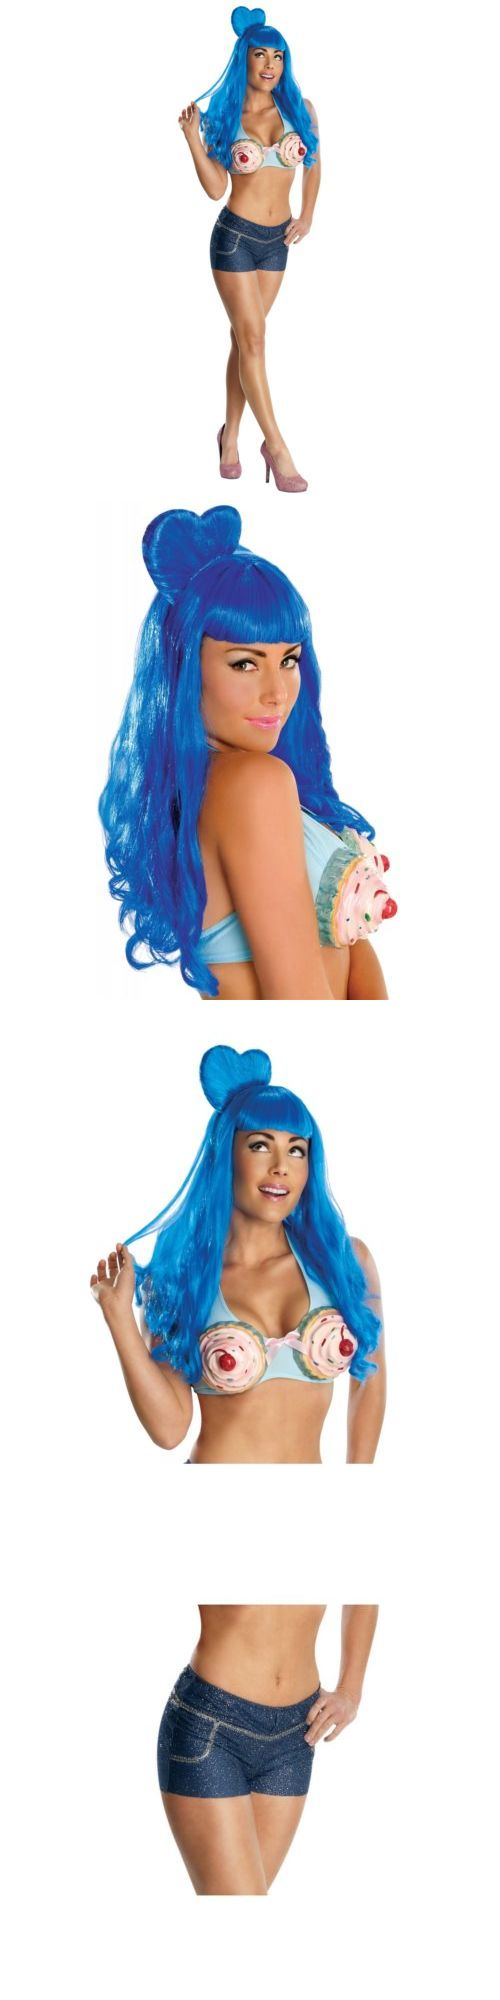 Women Costumes: Katy Perry Costume Adult California Gurls Cupcake Pop Star Halloween Fancy Dress -> BUY IT NOW ONLY: $18.49 on eBay!